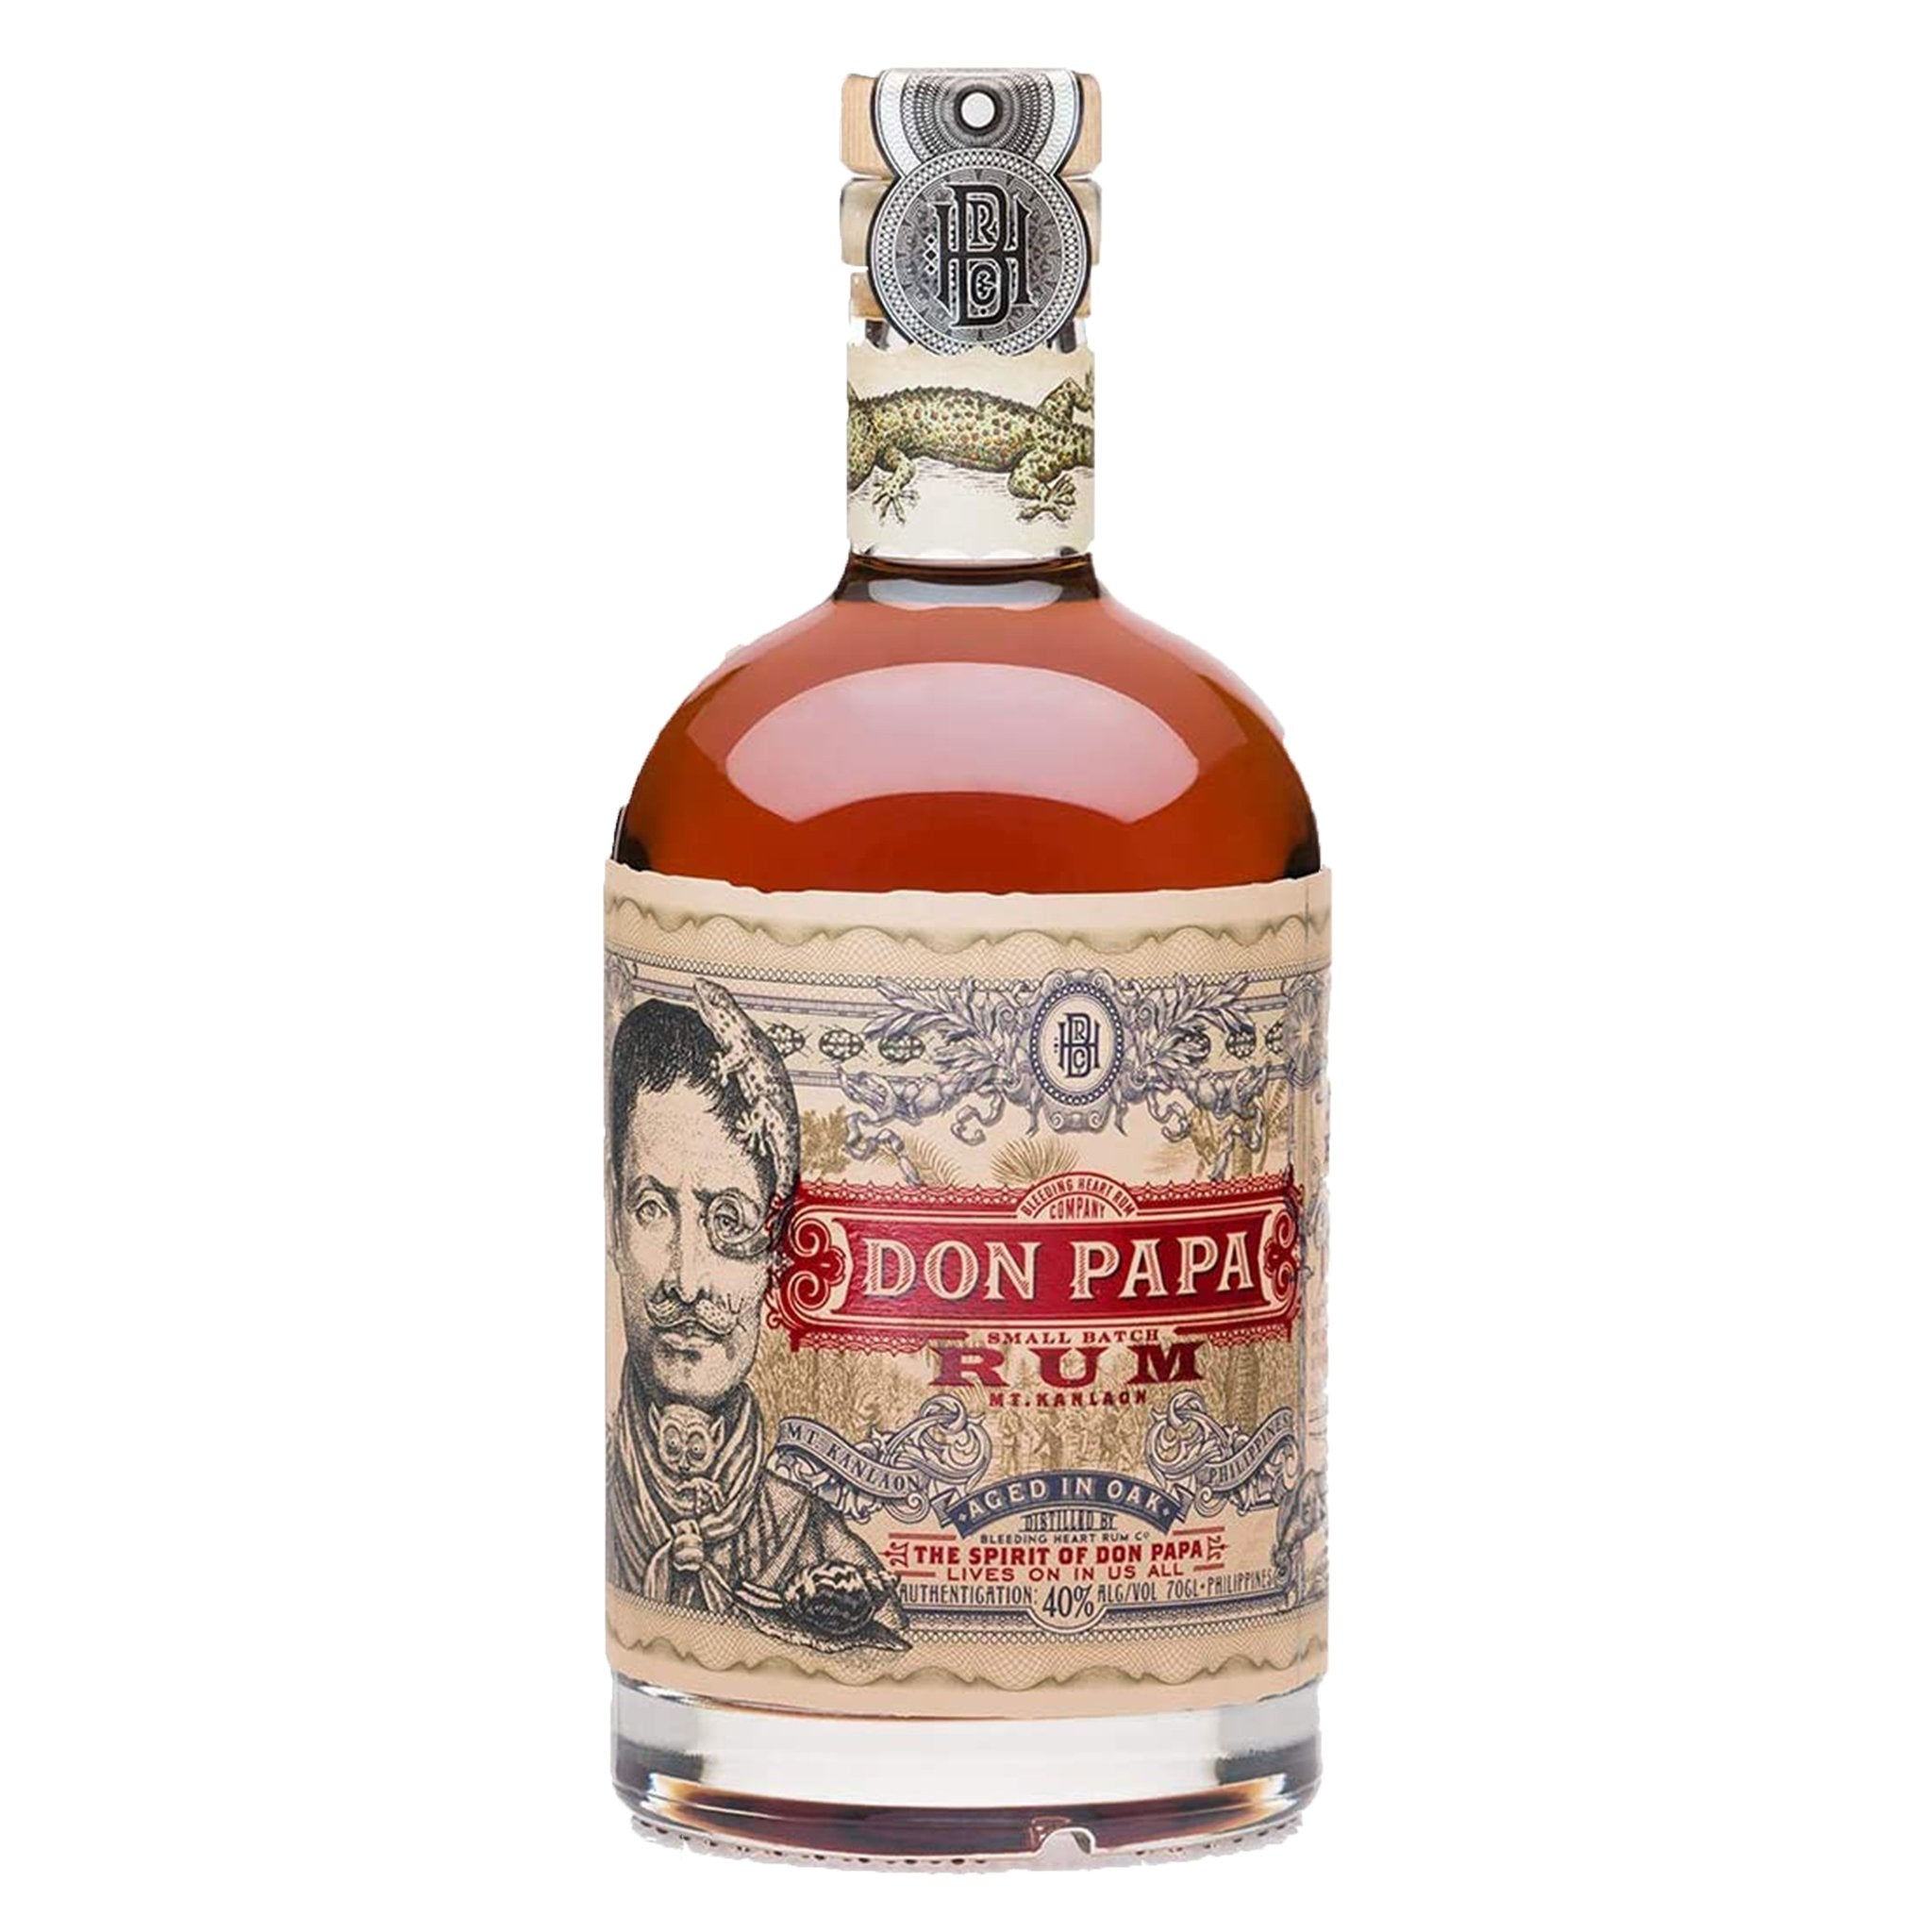 Don Papa Aged in Oak 70cl, Rum - Image 0